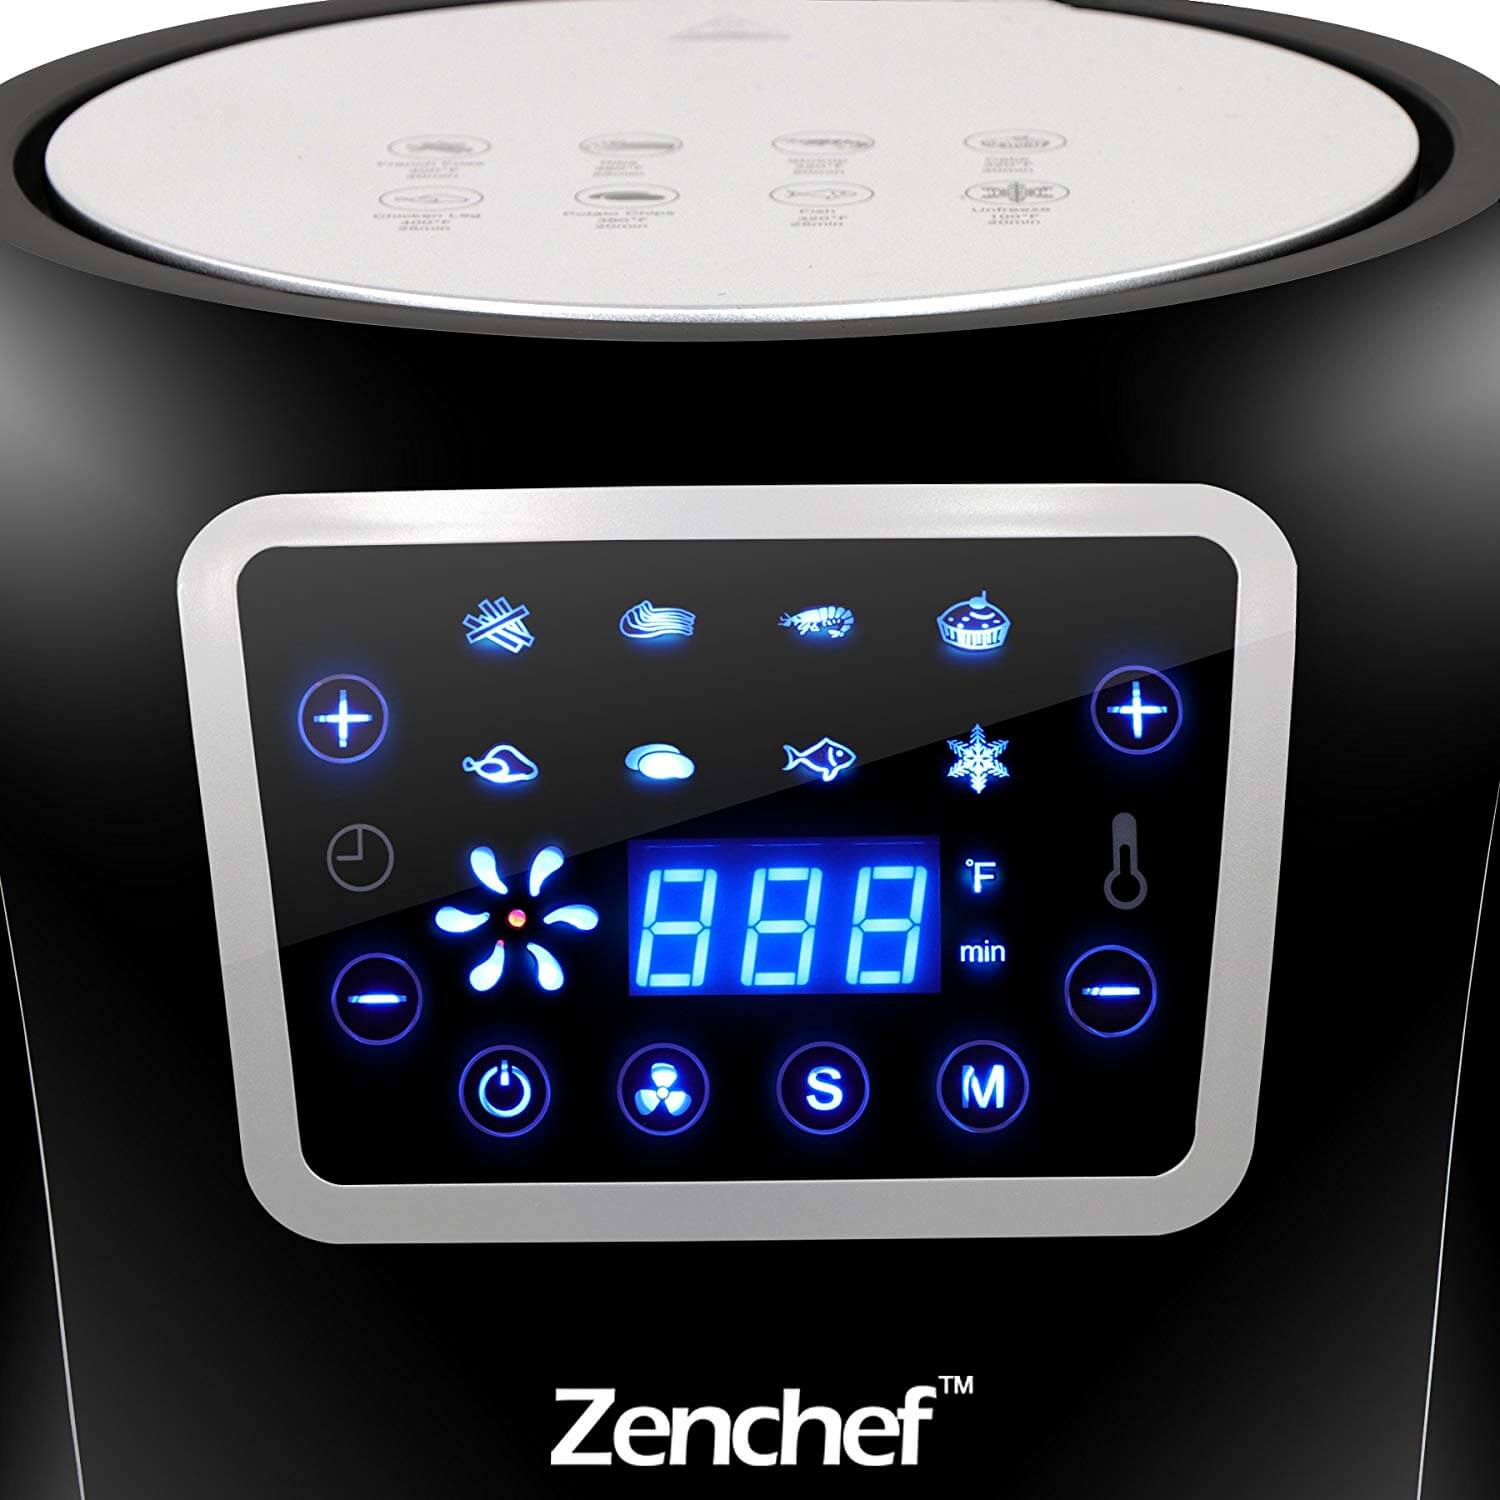 Super Deal Zenchef Pro Xxl Hot Air Fryer Designed For Family